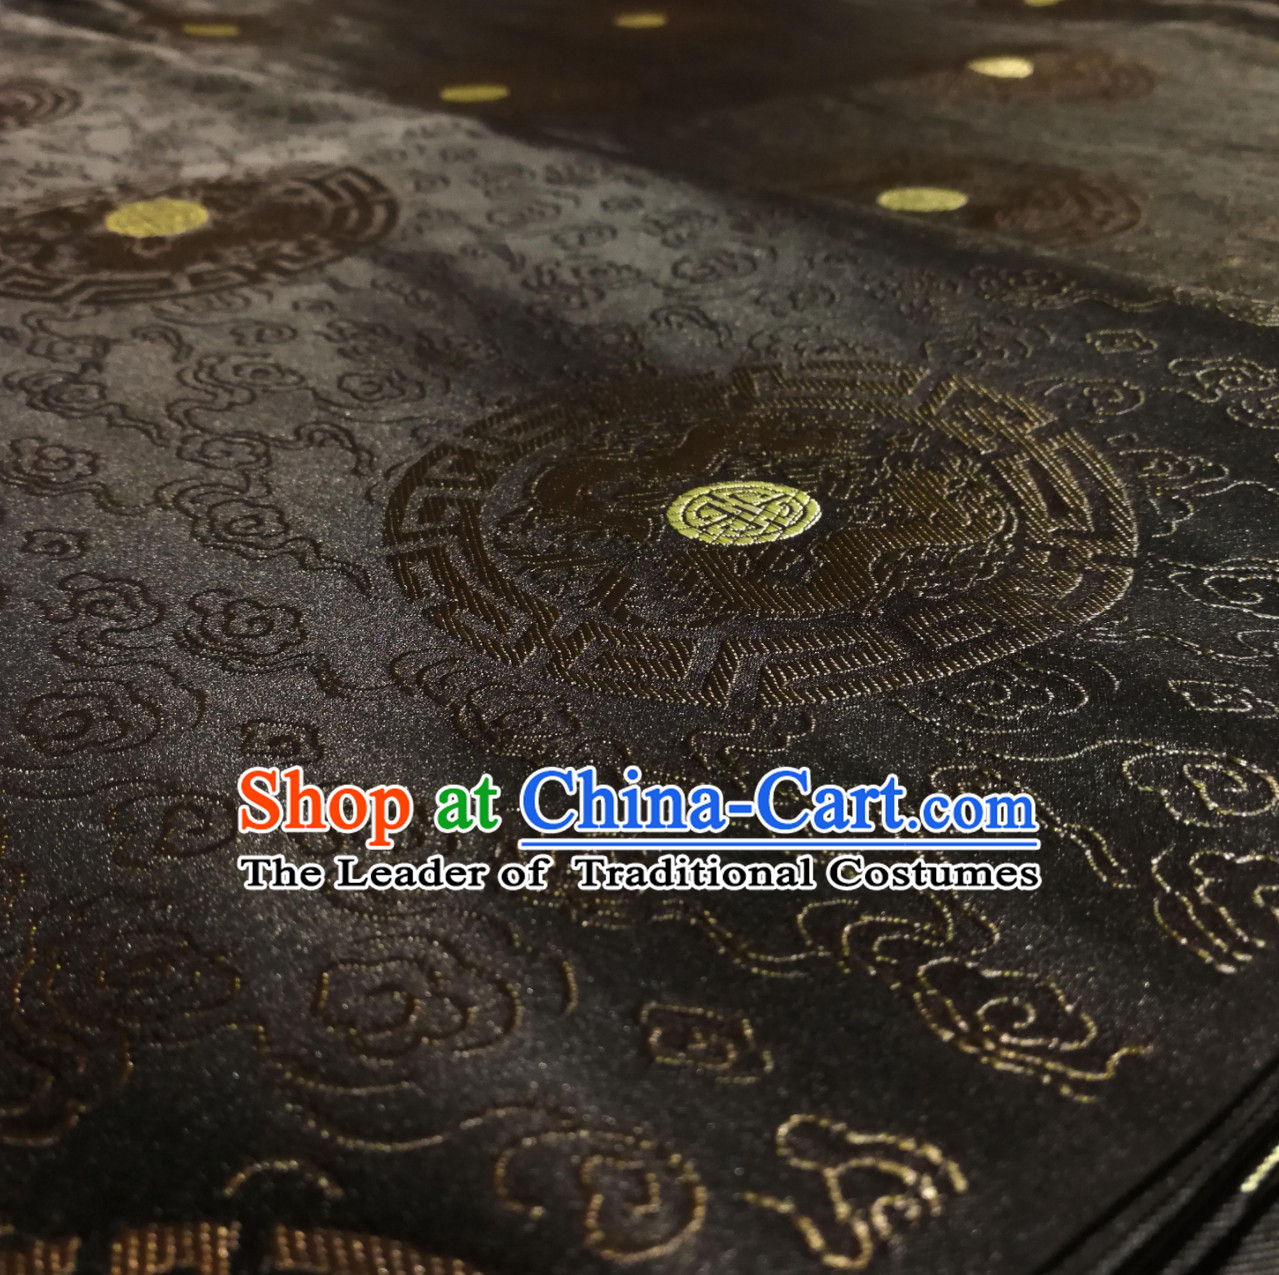 Black Color Chinese Royal Palace Style Traditional Round Dragon Pattern Design Brocade Fabric Silk Fabric Chinese Fabric Asian Material